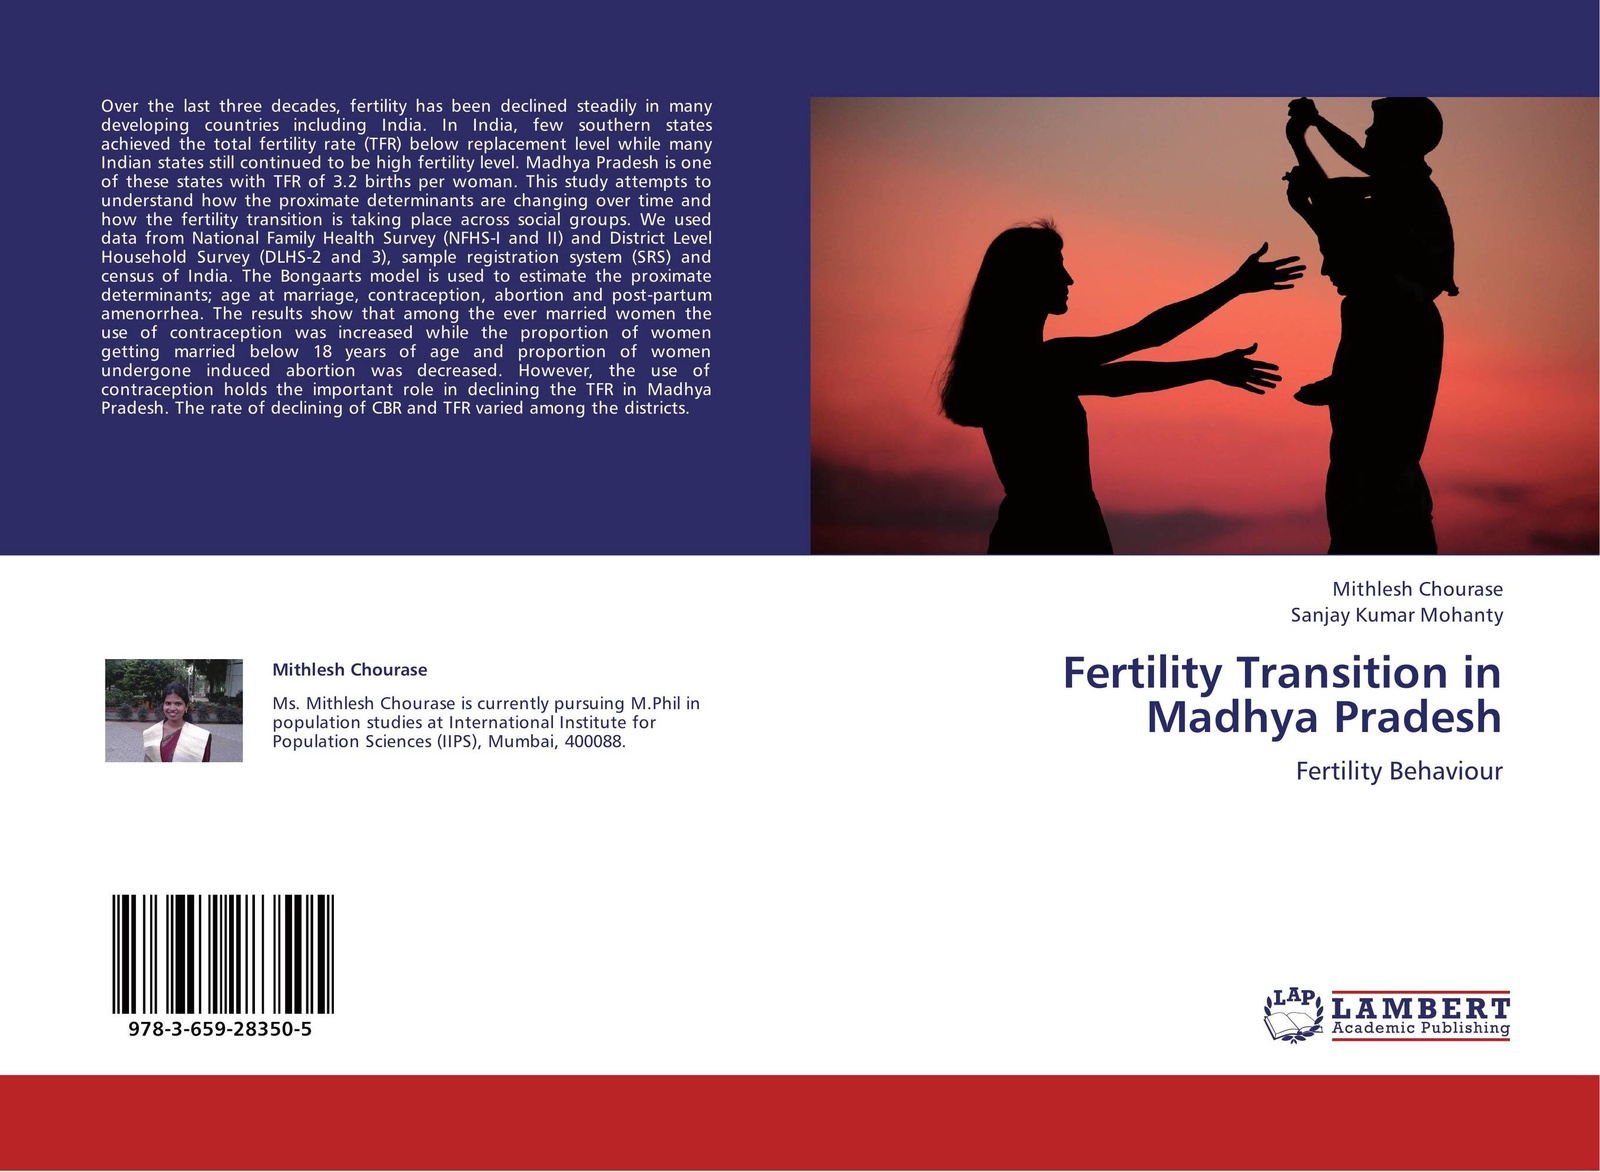 купить Mithlesh Chourase and Sanjay Kumar Mohanty Fertility Transition in Madhya Pradesh по цене 3944 рублей